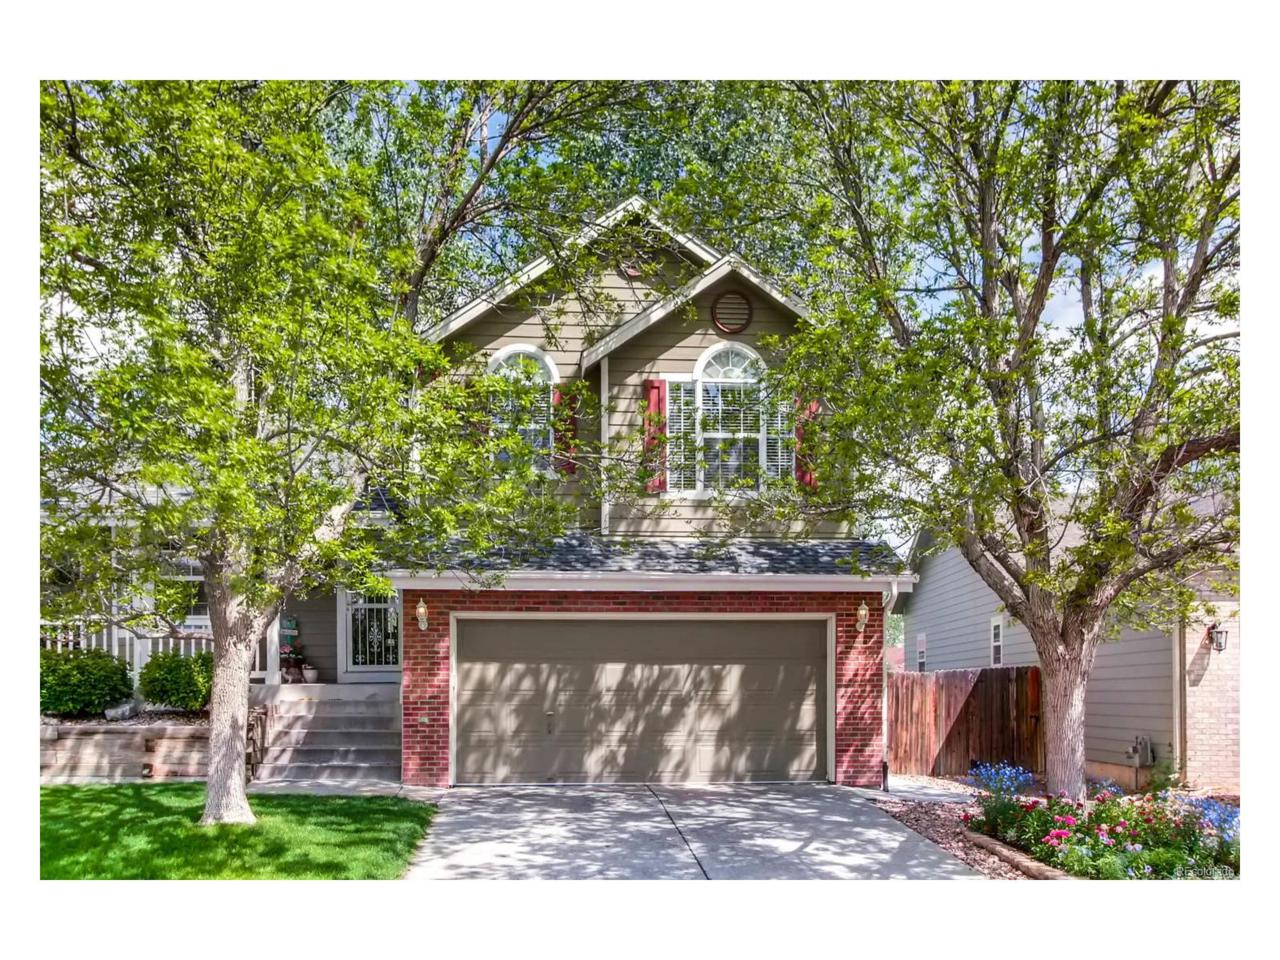 13847 W 65th Drive, Arvada, CO 80004 (MLS #9945911) :: 8z Real Estate